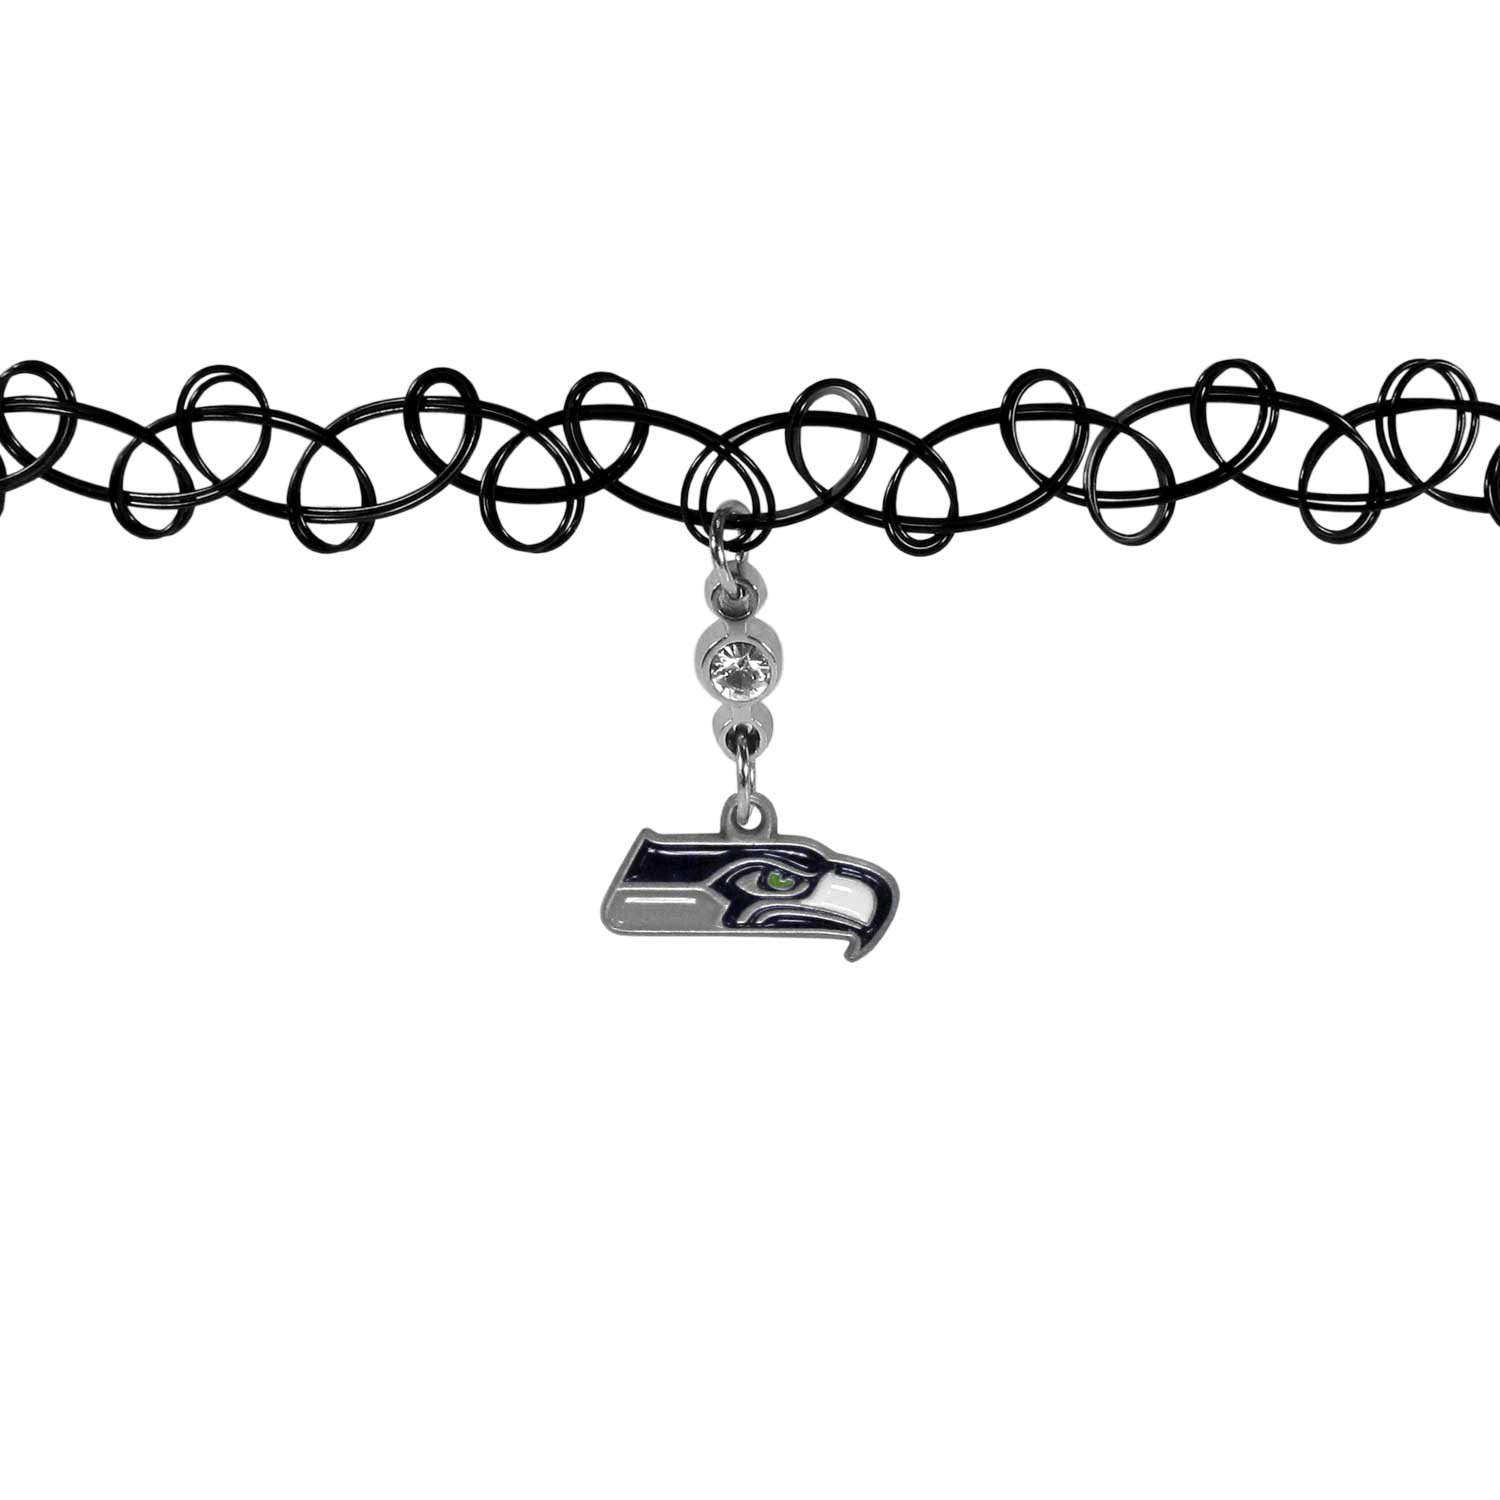 Seattle Seahawks Knotted Choker - This retro, knotted choker is a cool and unique piece of fan jewelry. The tattoo style choker features a high polish Seattle Seahawks charm with rhinestone accents.